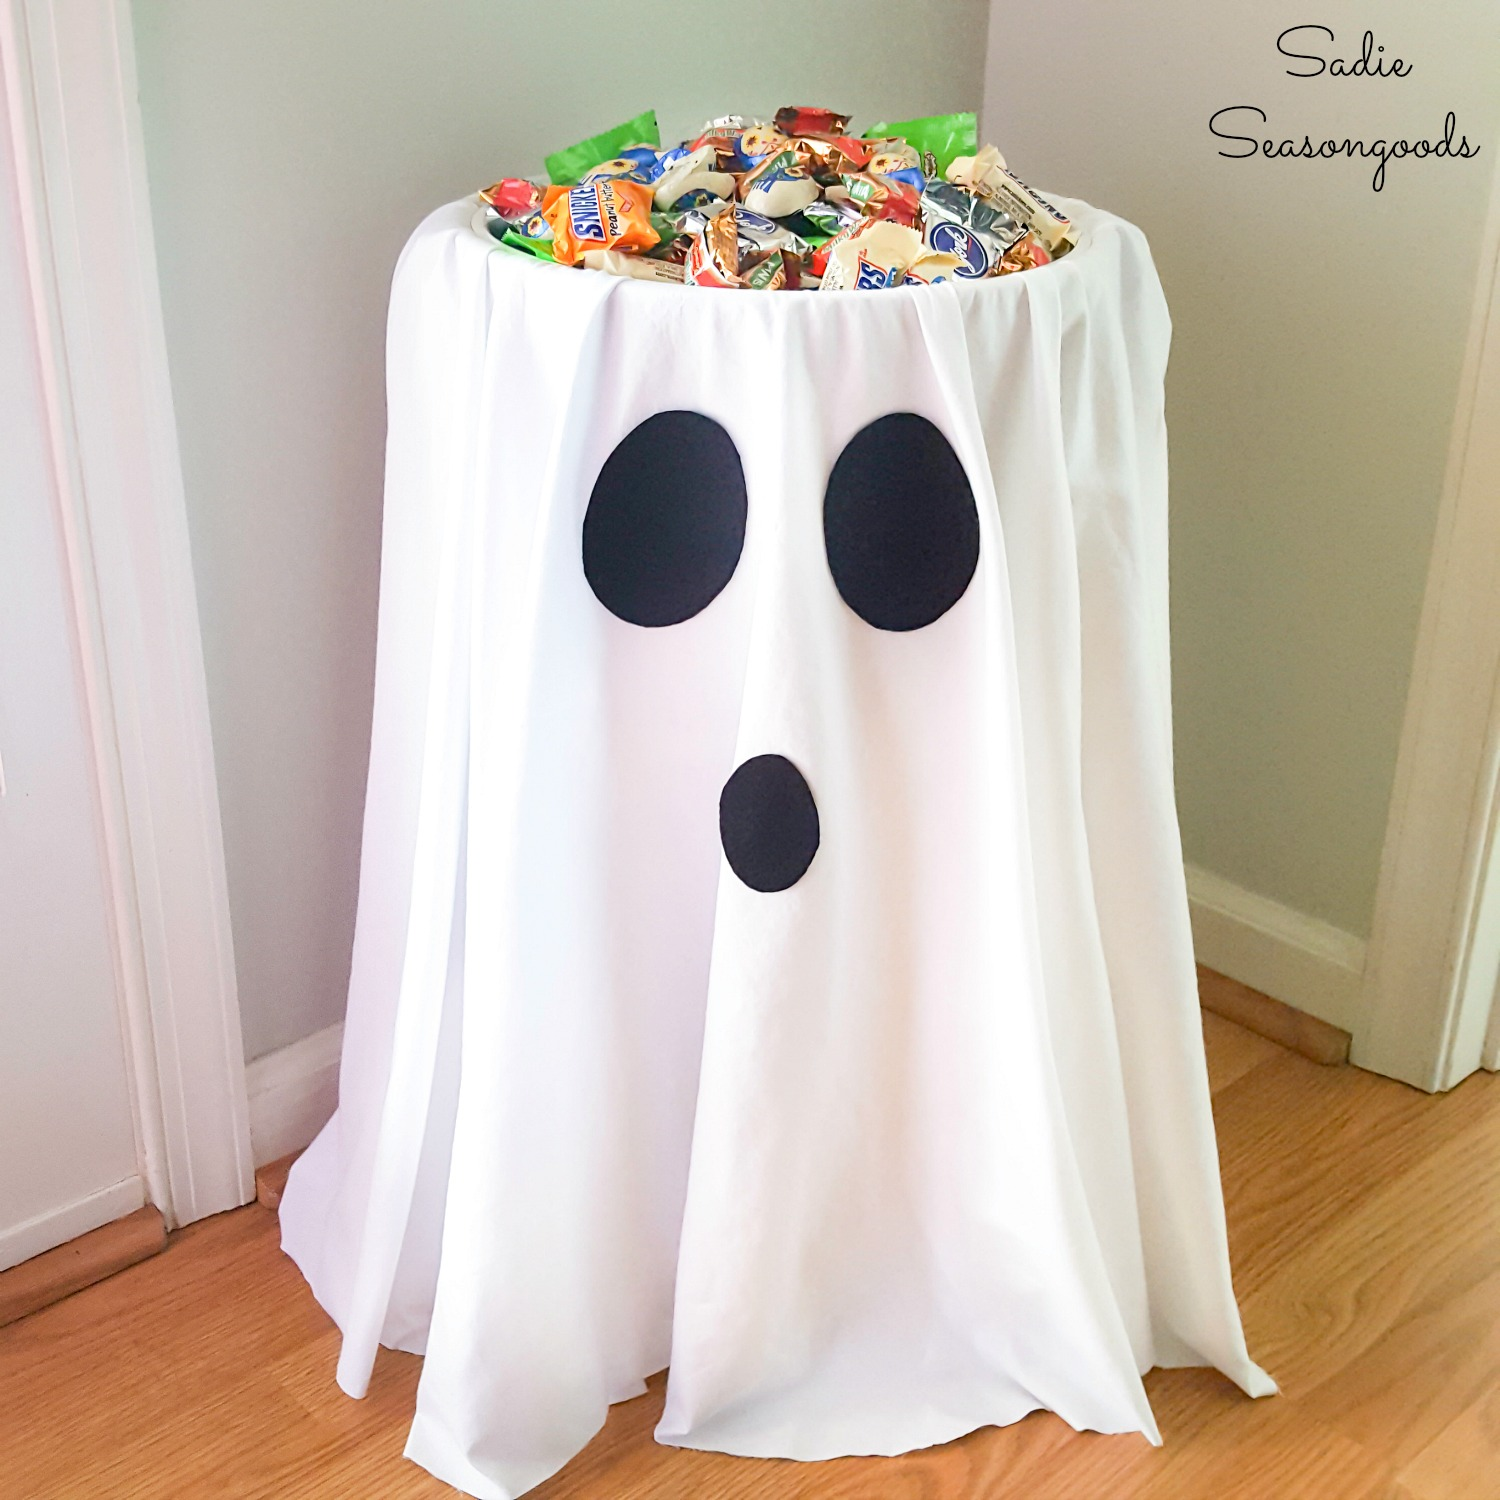 Halloween trick or treat ideas with a candy bowl holder